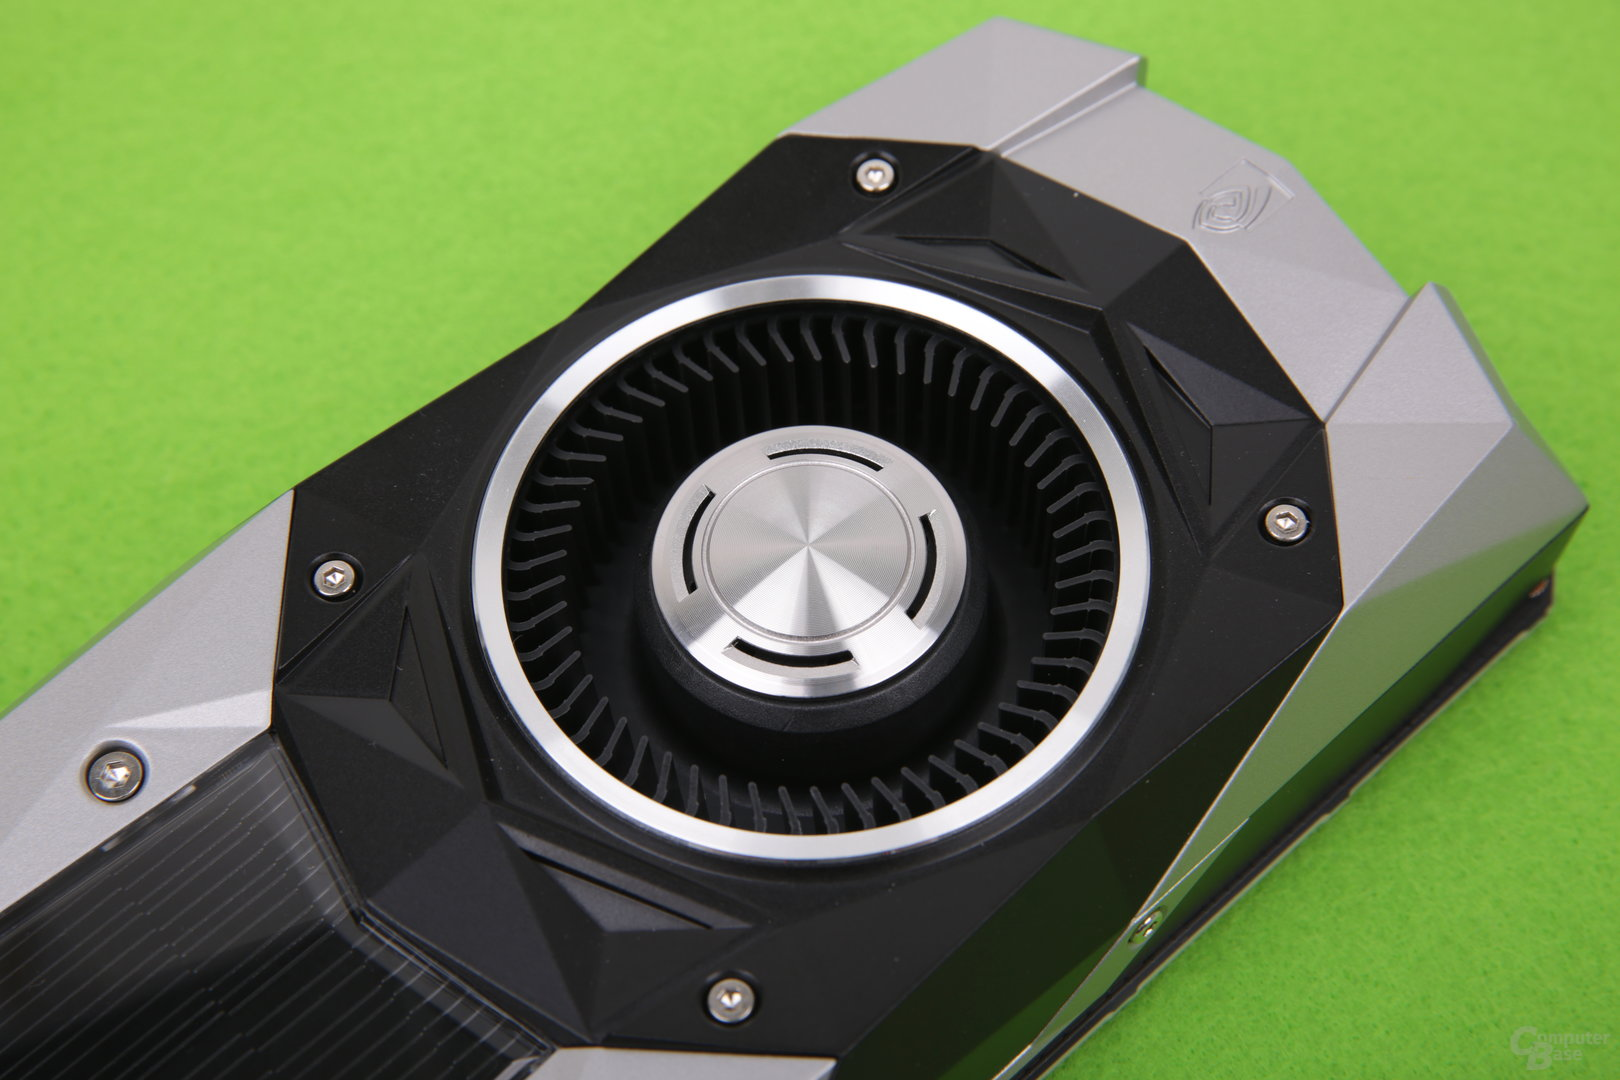 GeForce GTX 1080 Ti FE - Lüfter